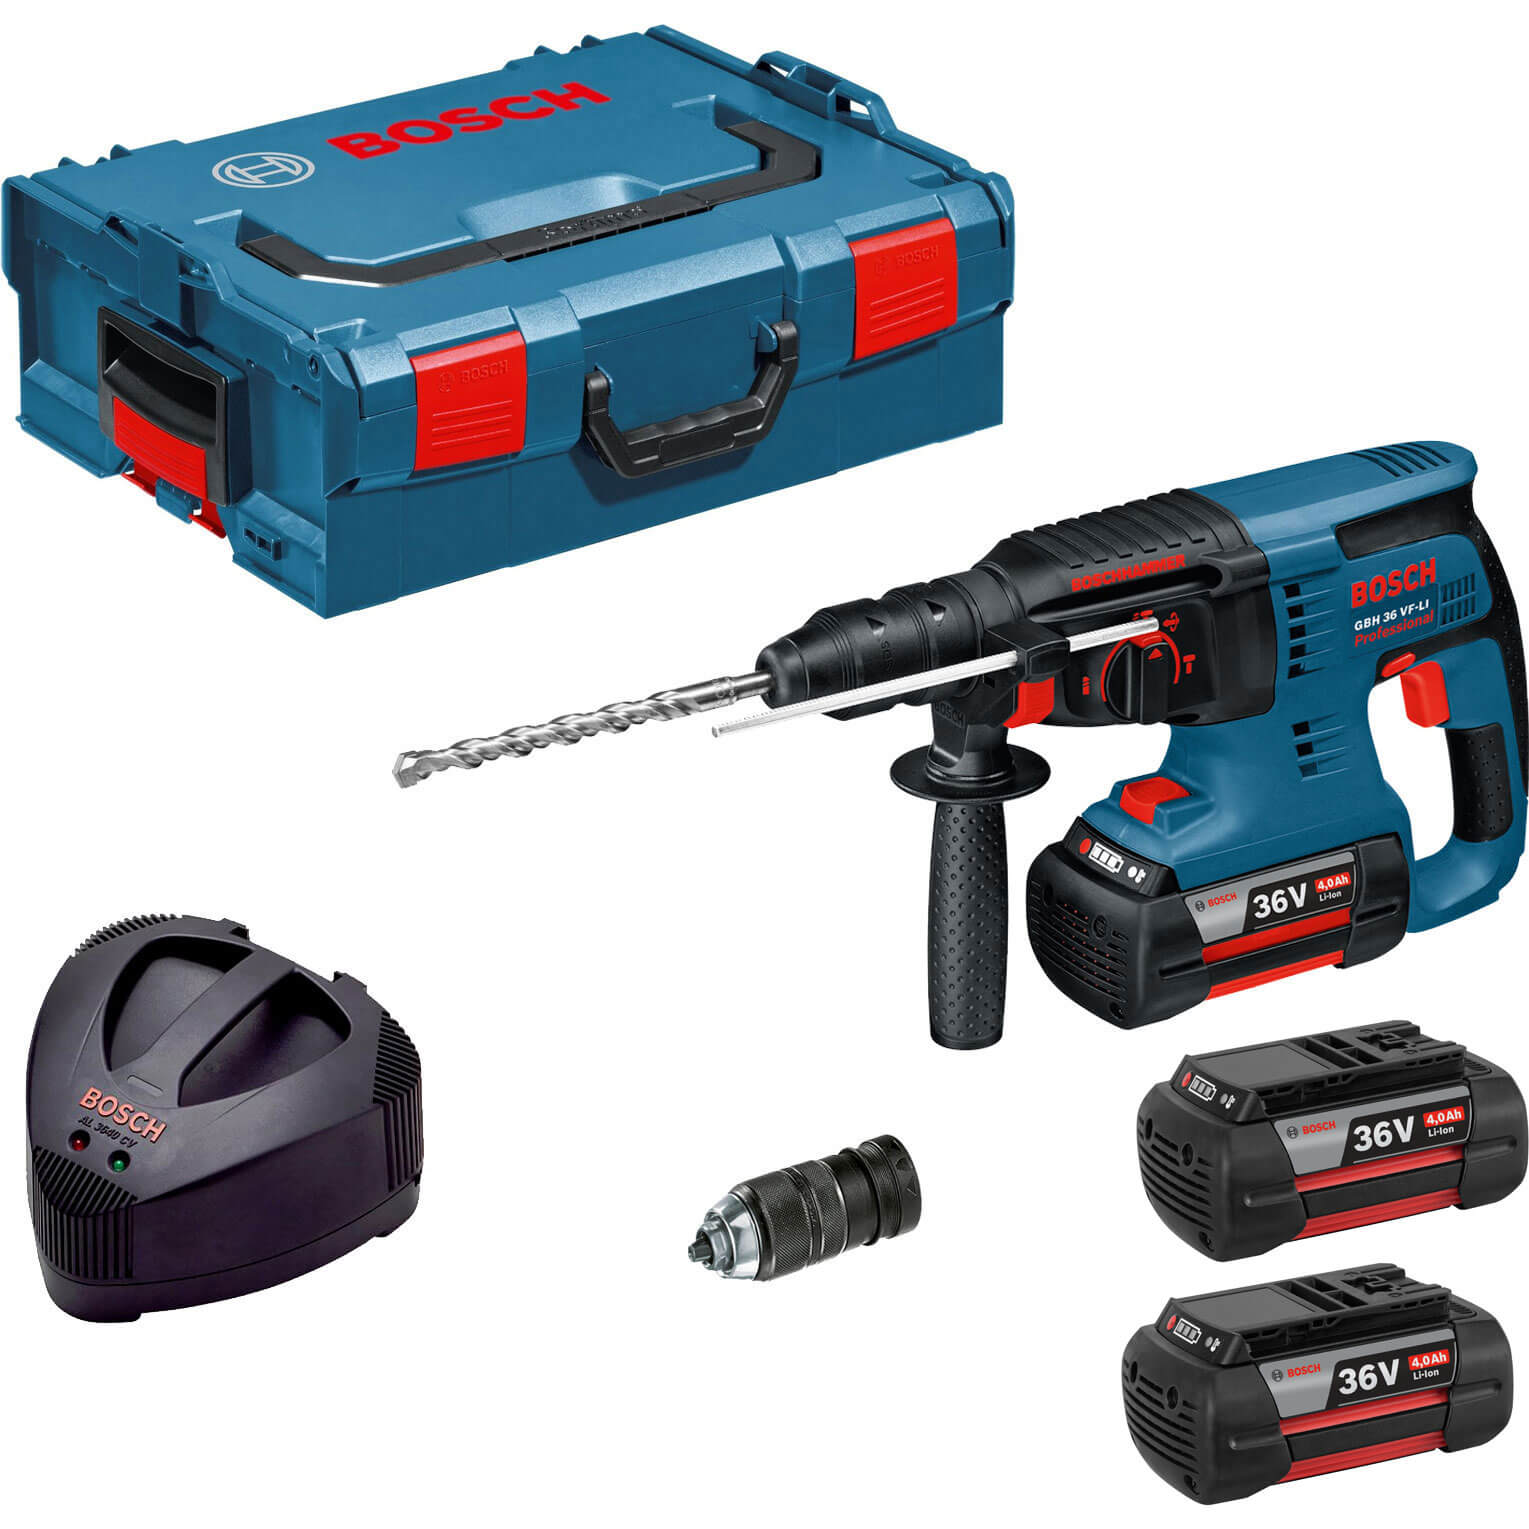 Bosch GBH 36 VF-LI 36v Cordless SDS Plus Hammer Drill with Quick Change Chuck, L Boxx & 3 Lithium Ion Batteries 4ah